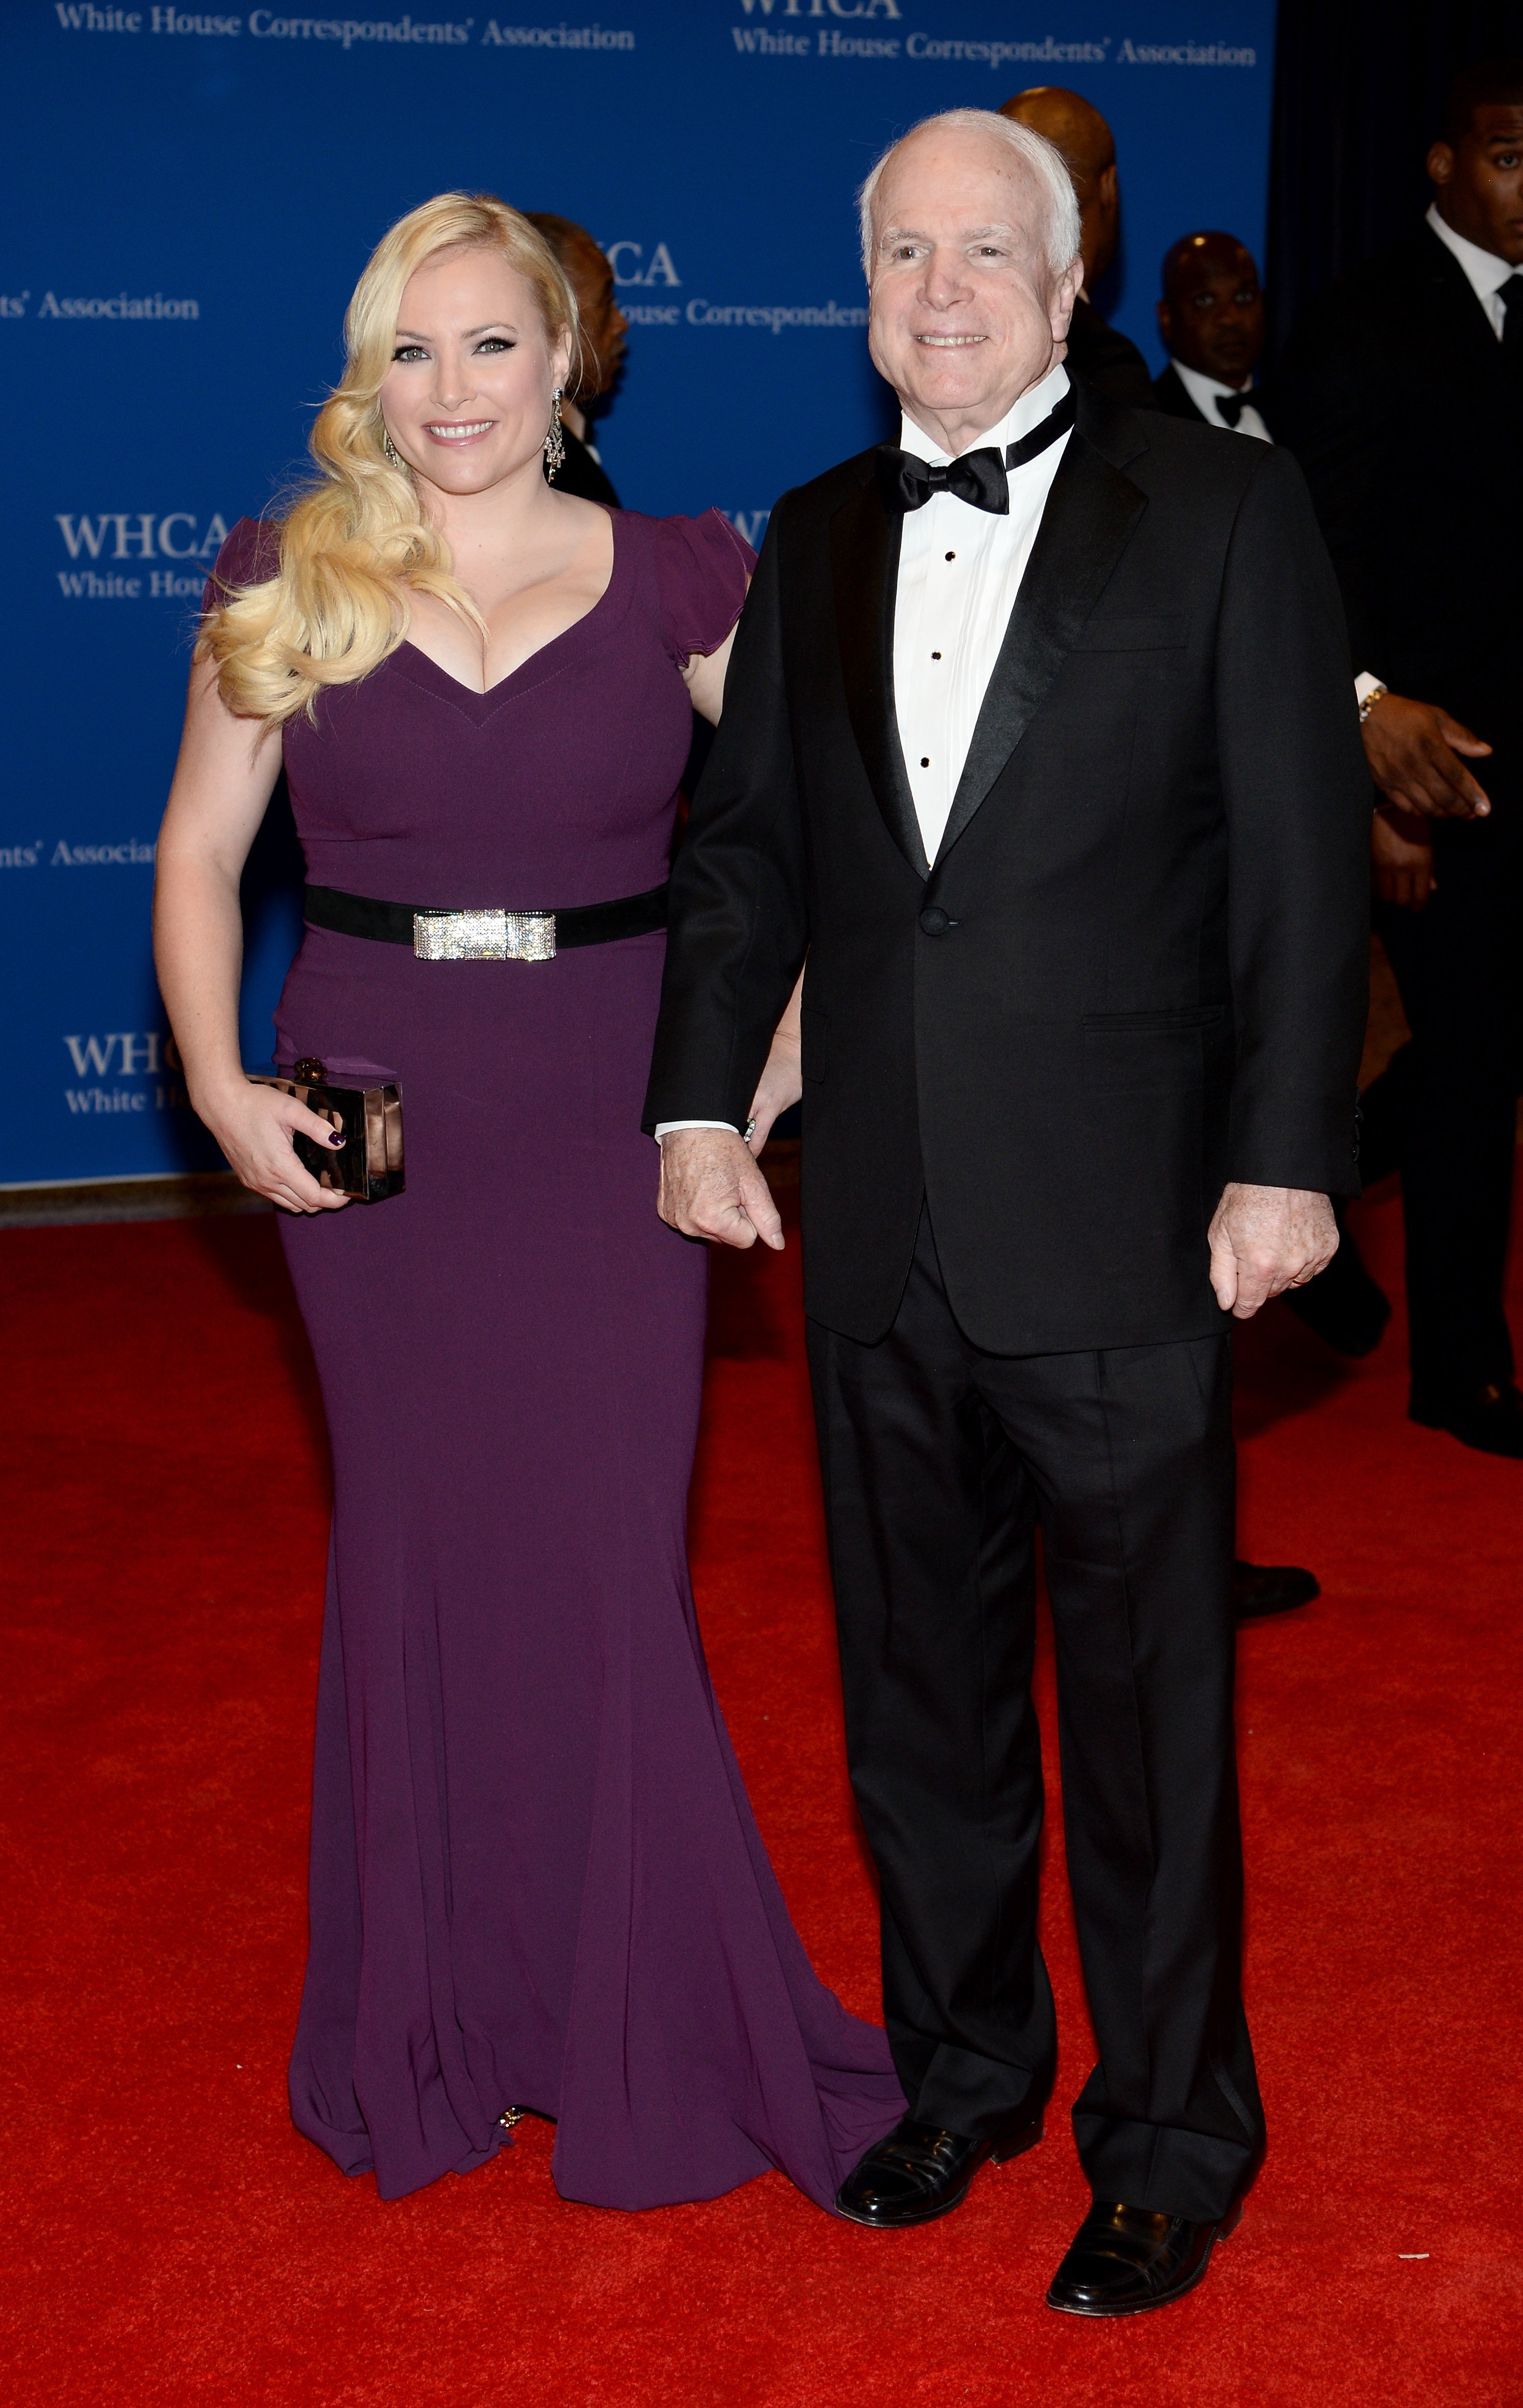 Meghan McCain and the late Senator John McCain attend the 100th Annual White House Correspondents' Dinner in Washington on May 3, 2014 | Photo: Getty Images